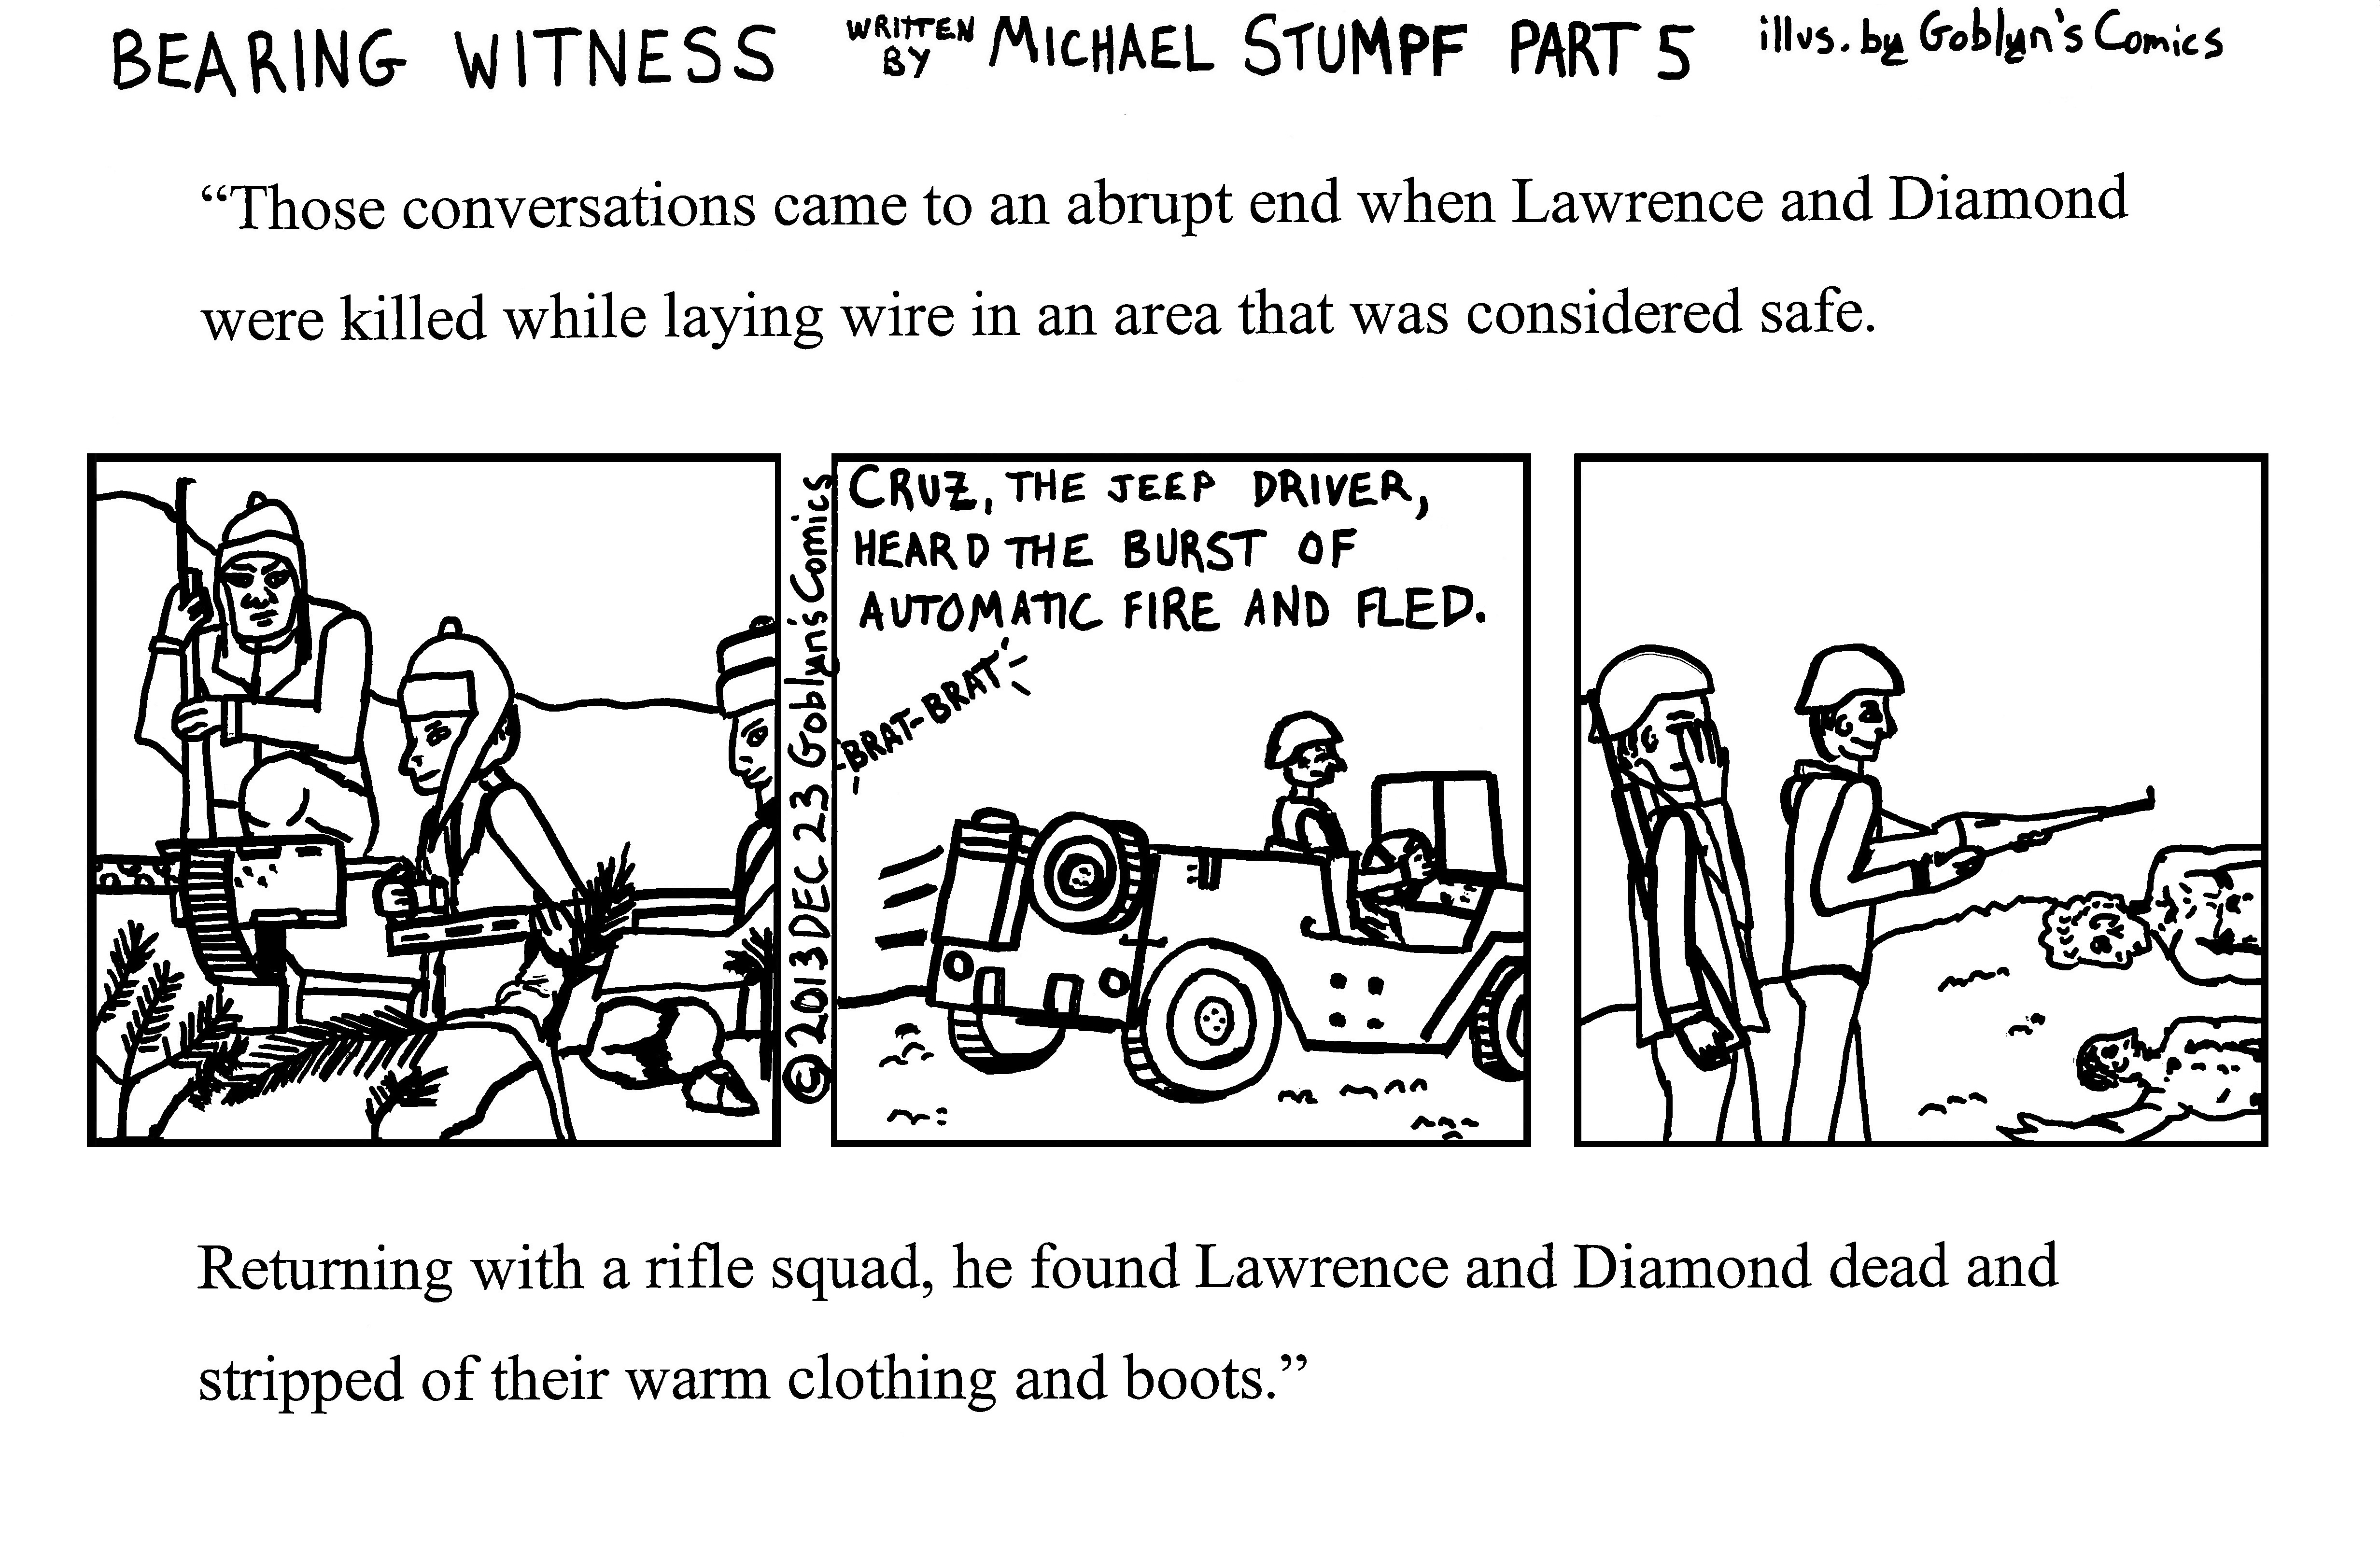 Bearing Witness Part 5 by Micahel Stumpf - Returning with a rifle squad, he found Lawrence and Diamond dead and stripped of their warm clothing and boots.